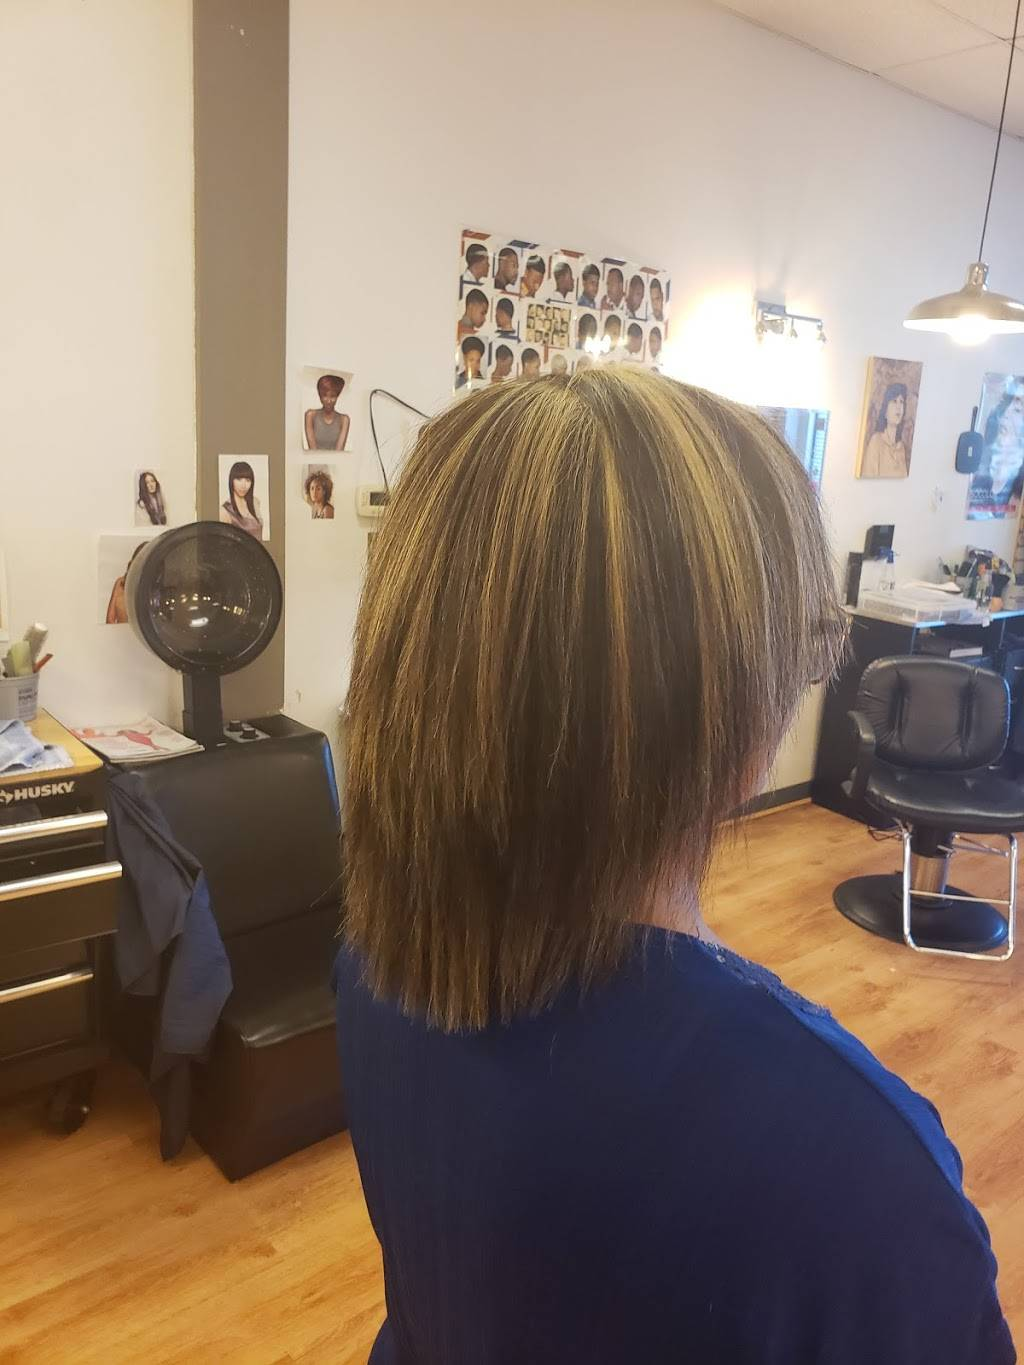 TC Haircuts - hair care  | Photo 4 of 10 | Address: 7816 Crowley Rd, Fort Worth, TX 76134, USA | Phone: (817) 293-1432